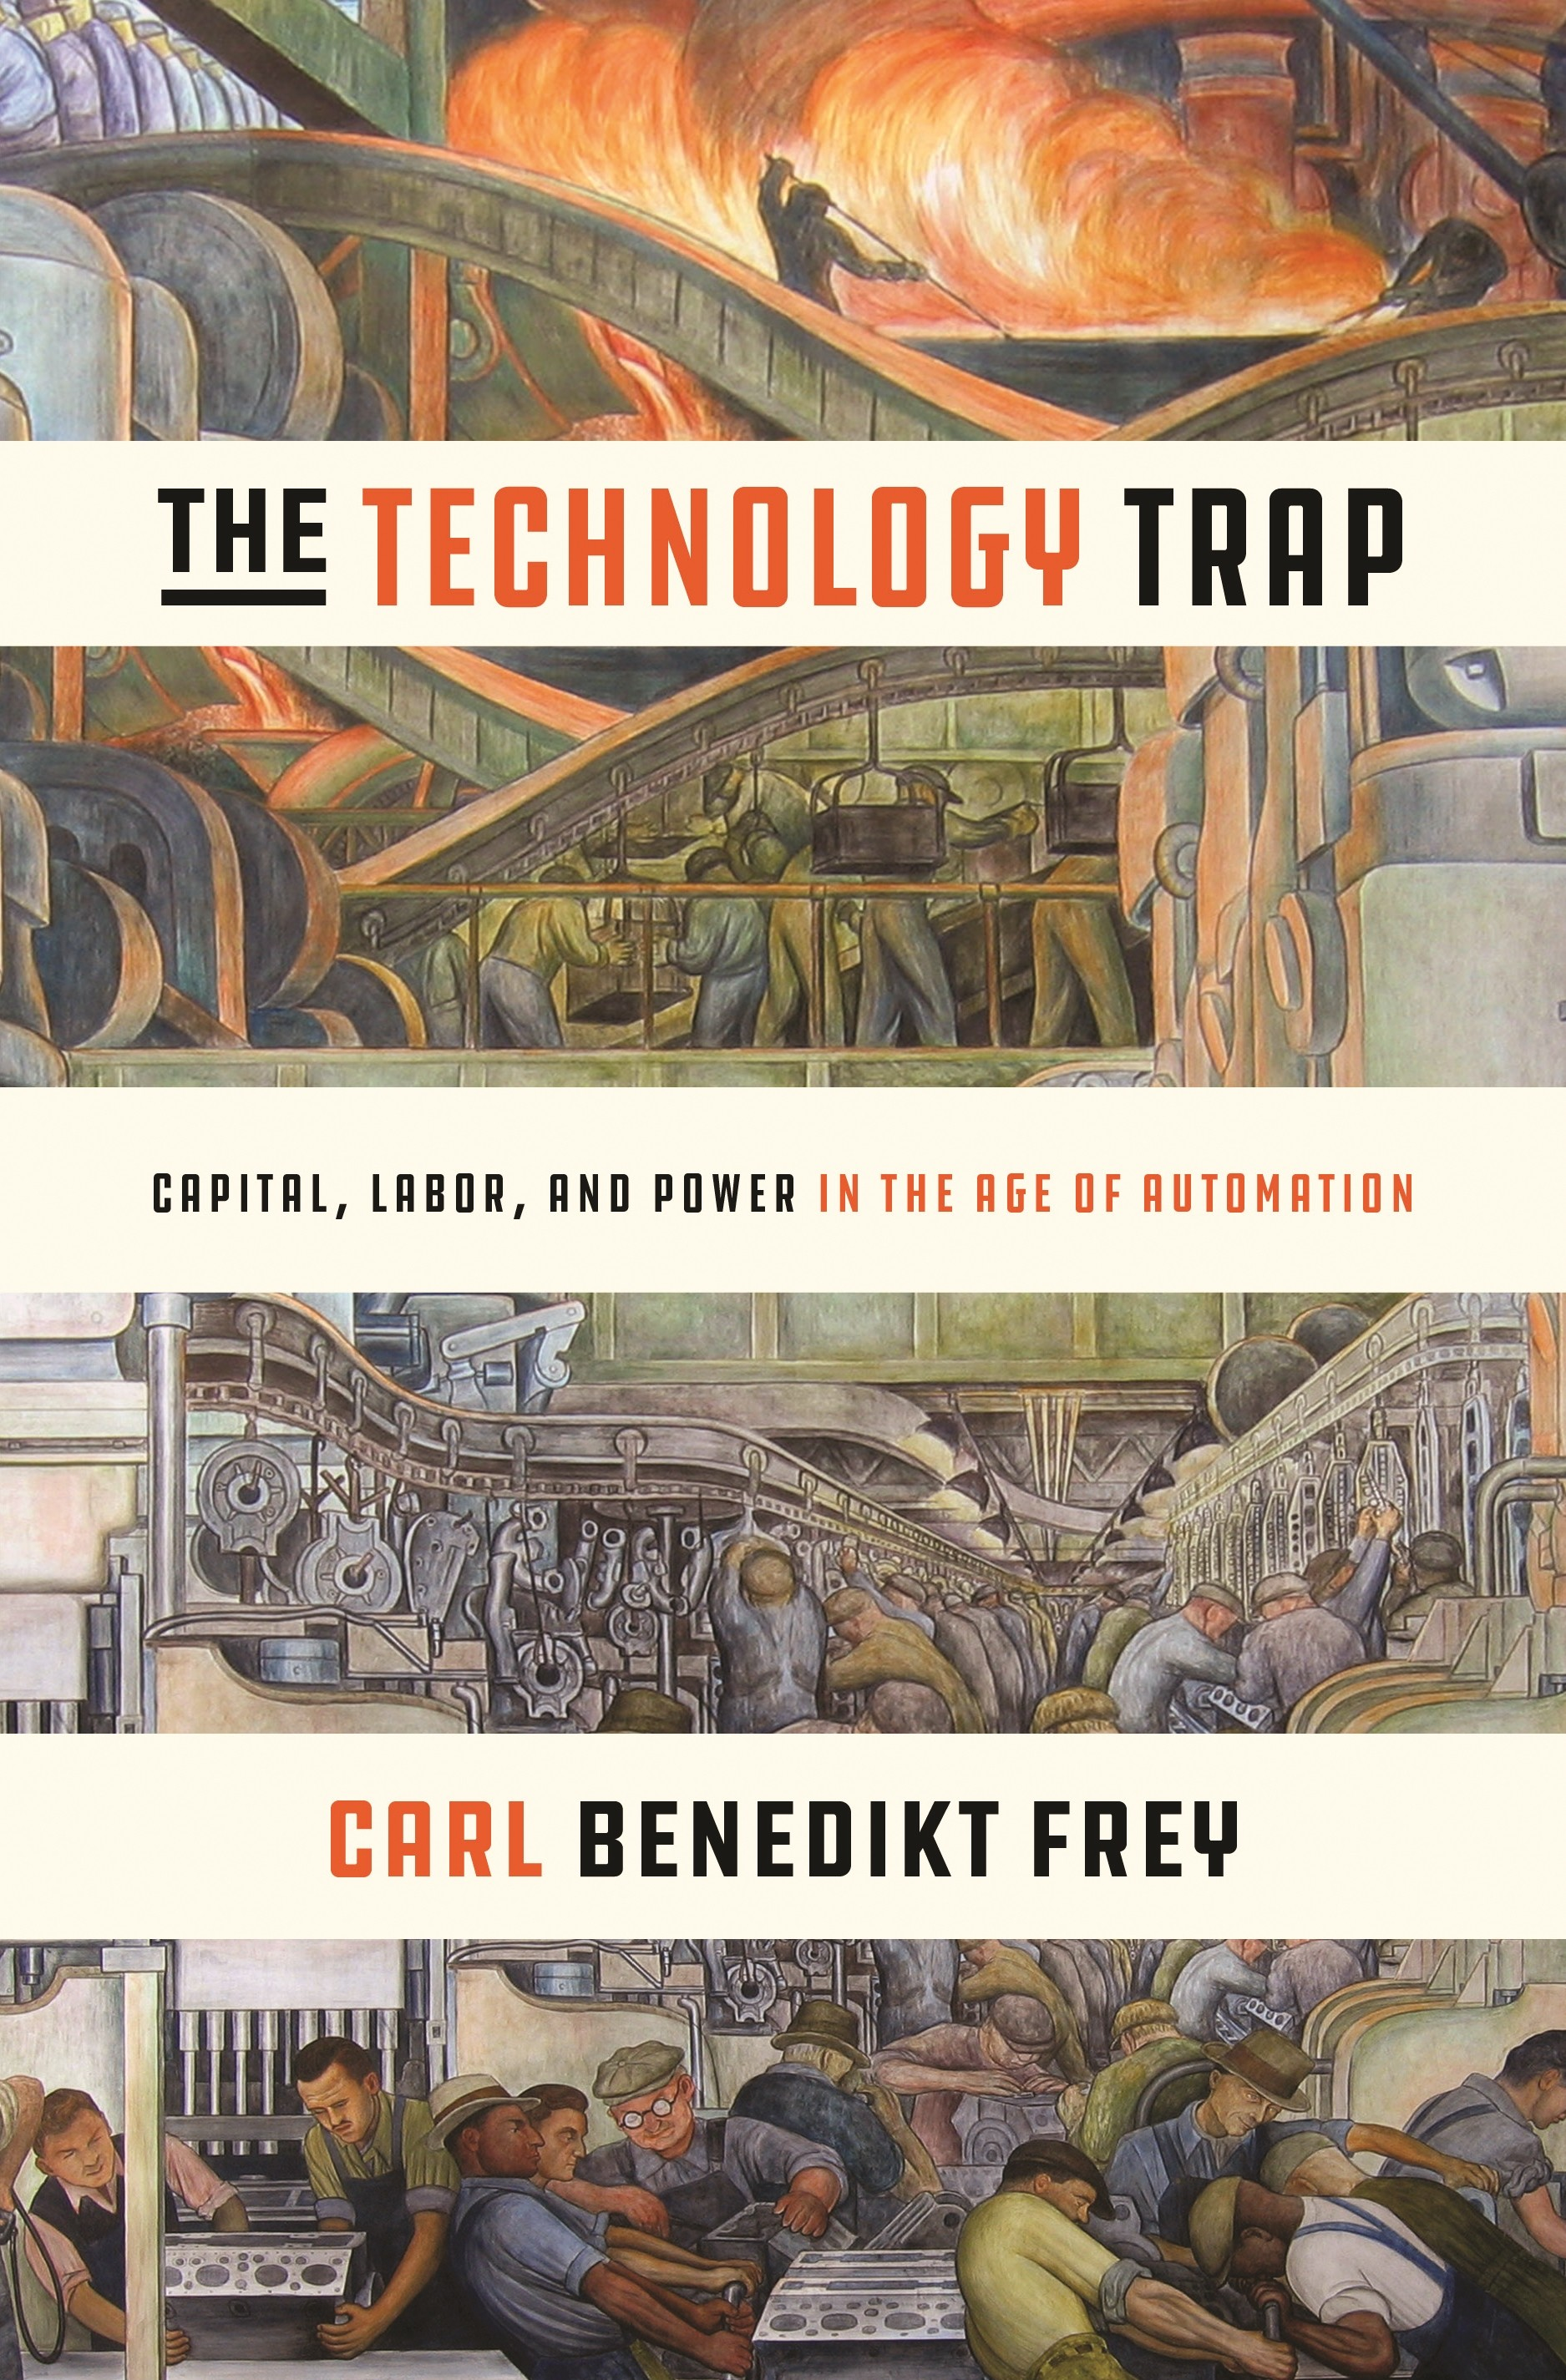 The Technology Trap: Capital, Labour and Power in the Age of Automation, de Carl Benedikt Frey (Foto: Divulgação)